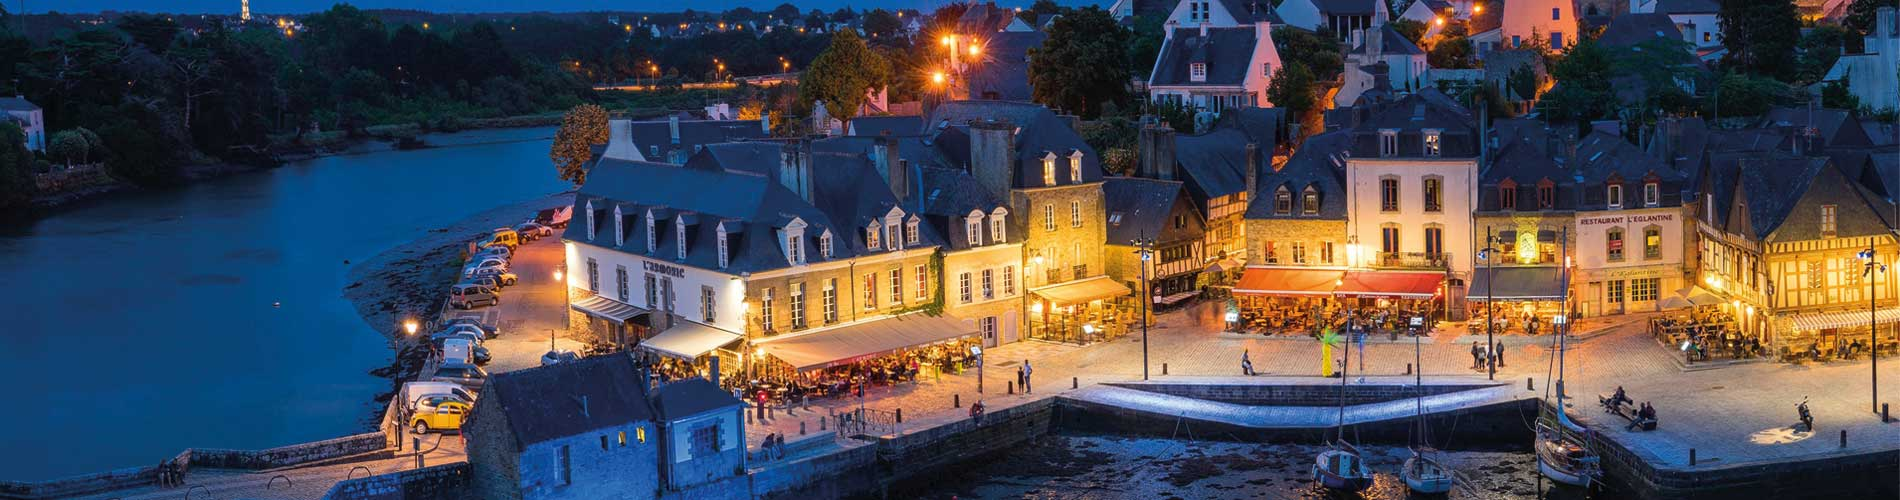 Blog_EarlyBooking_EC_Brittany_1900x500_Q120